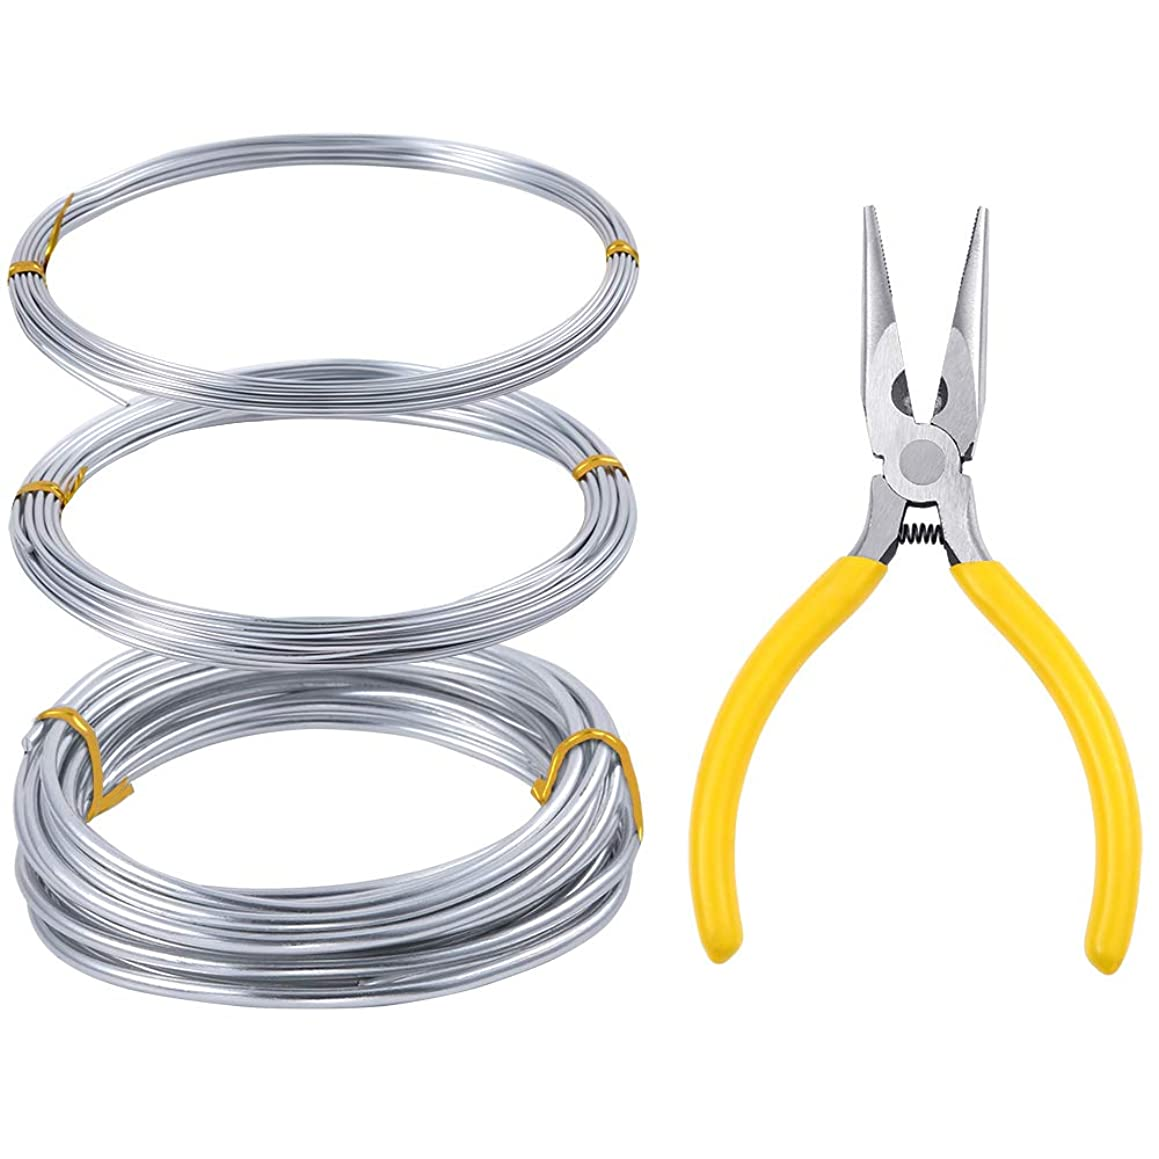 PP OPOUNT?Silver Aluminum Craft Wire 3 Rolls Each Roll 16.4 Feet Bendable Metal Wire with Needle-Nose Pliers for DIY Craft, Sculpture, Jewelry Making(3 Size in 1 mm 1.5mm 3mm Thickness)